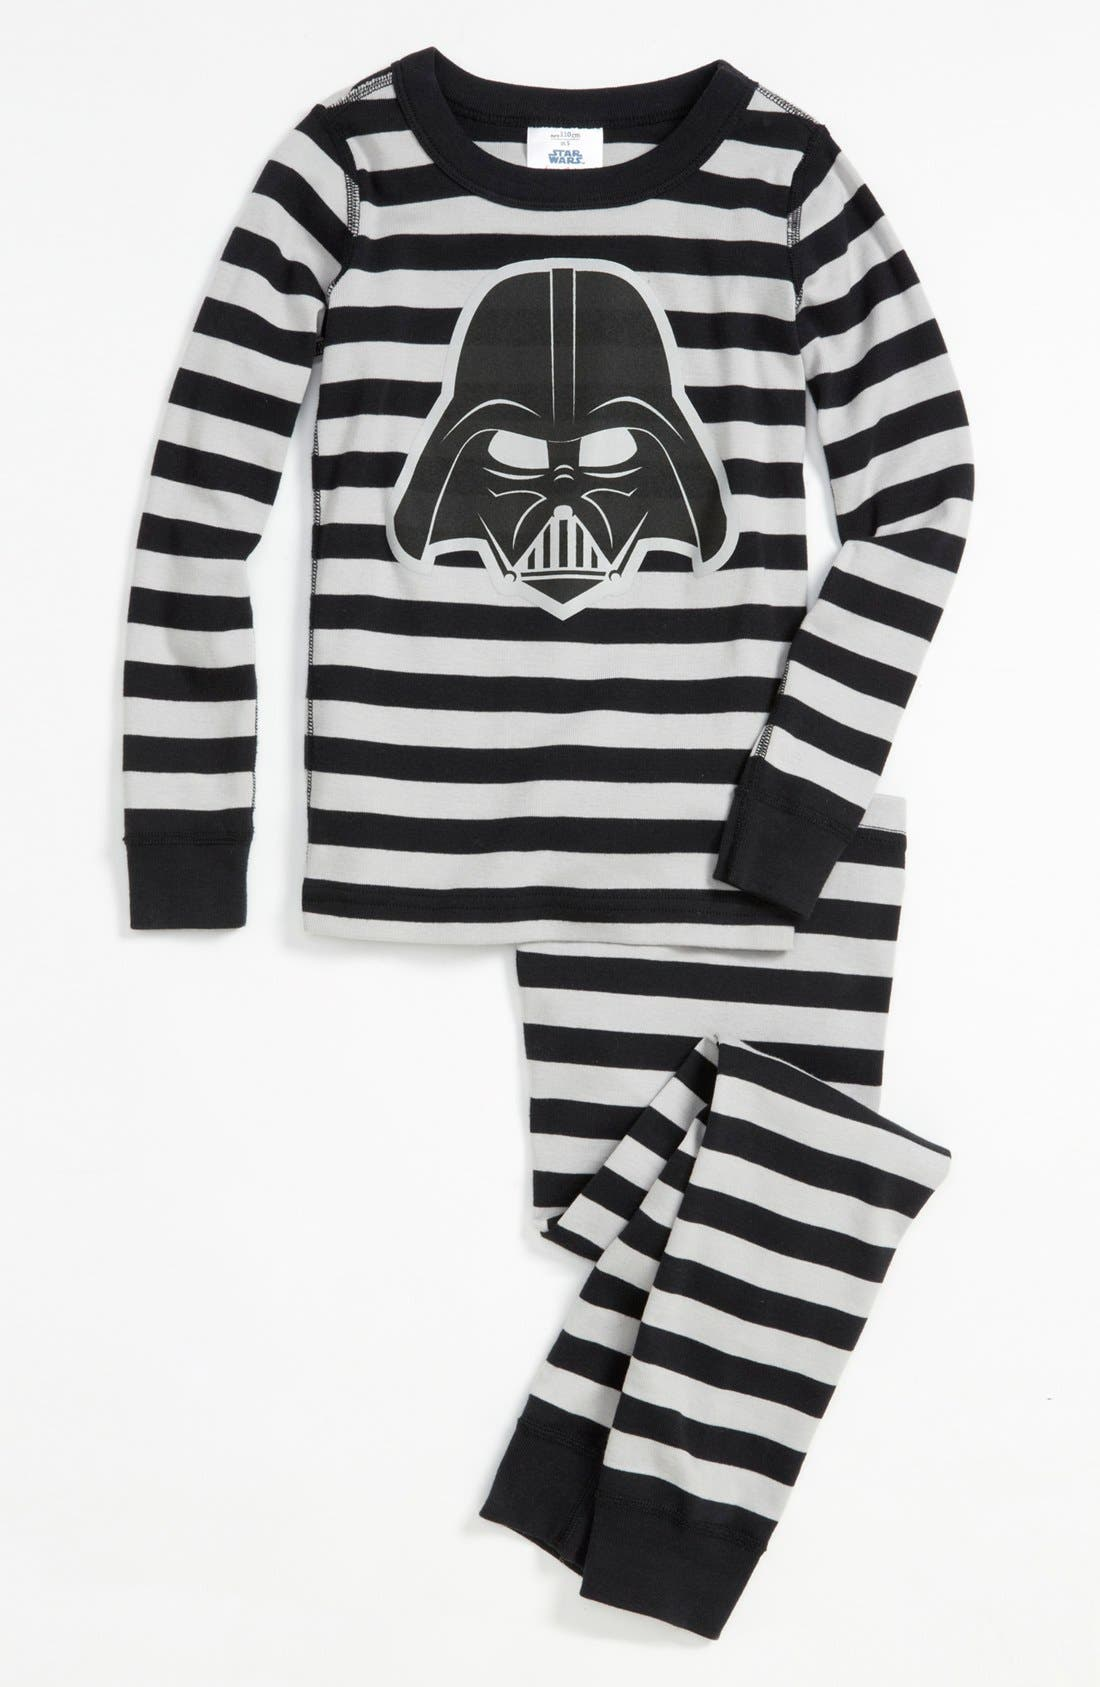 Main Image - Hanna Andersson Darth Vader™ Organic Cotton Fitted Two-Piece Pajamas (Toddler Boys, Little Boys & Big Boys)